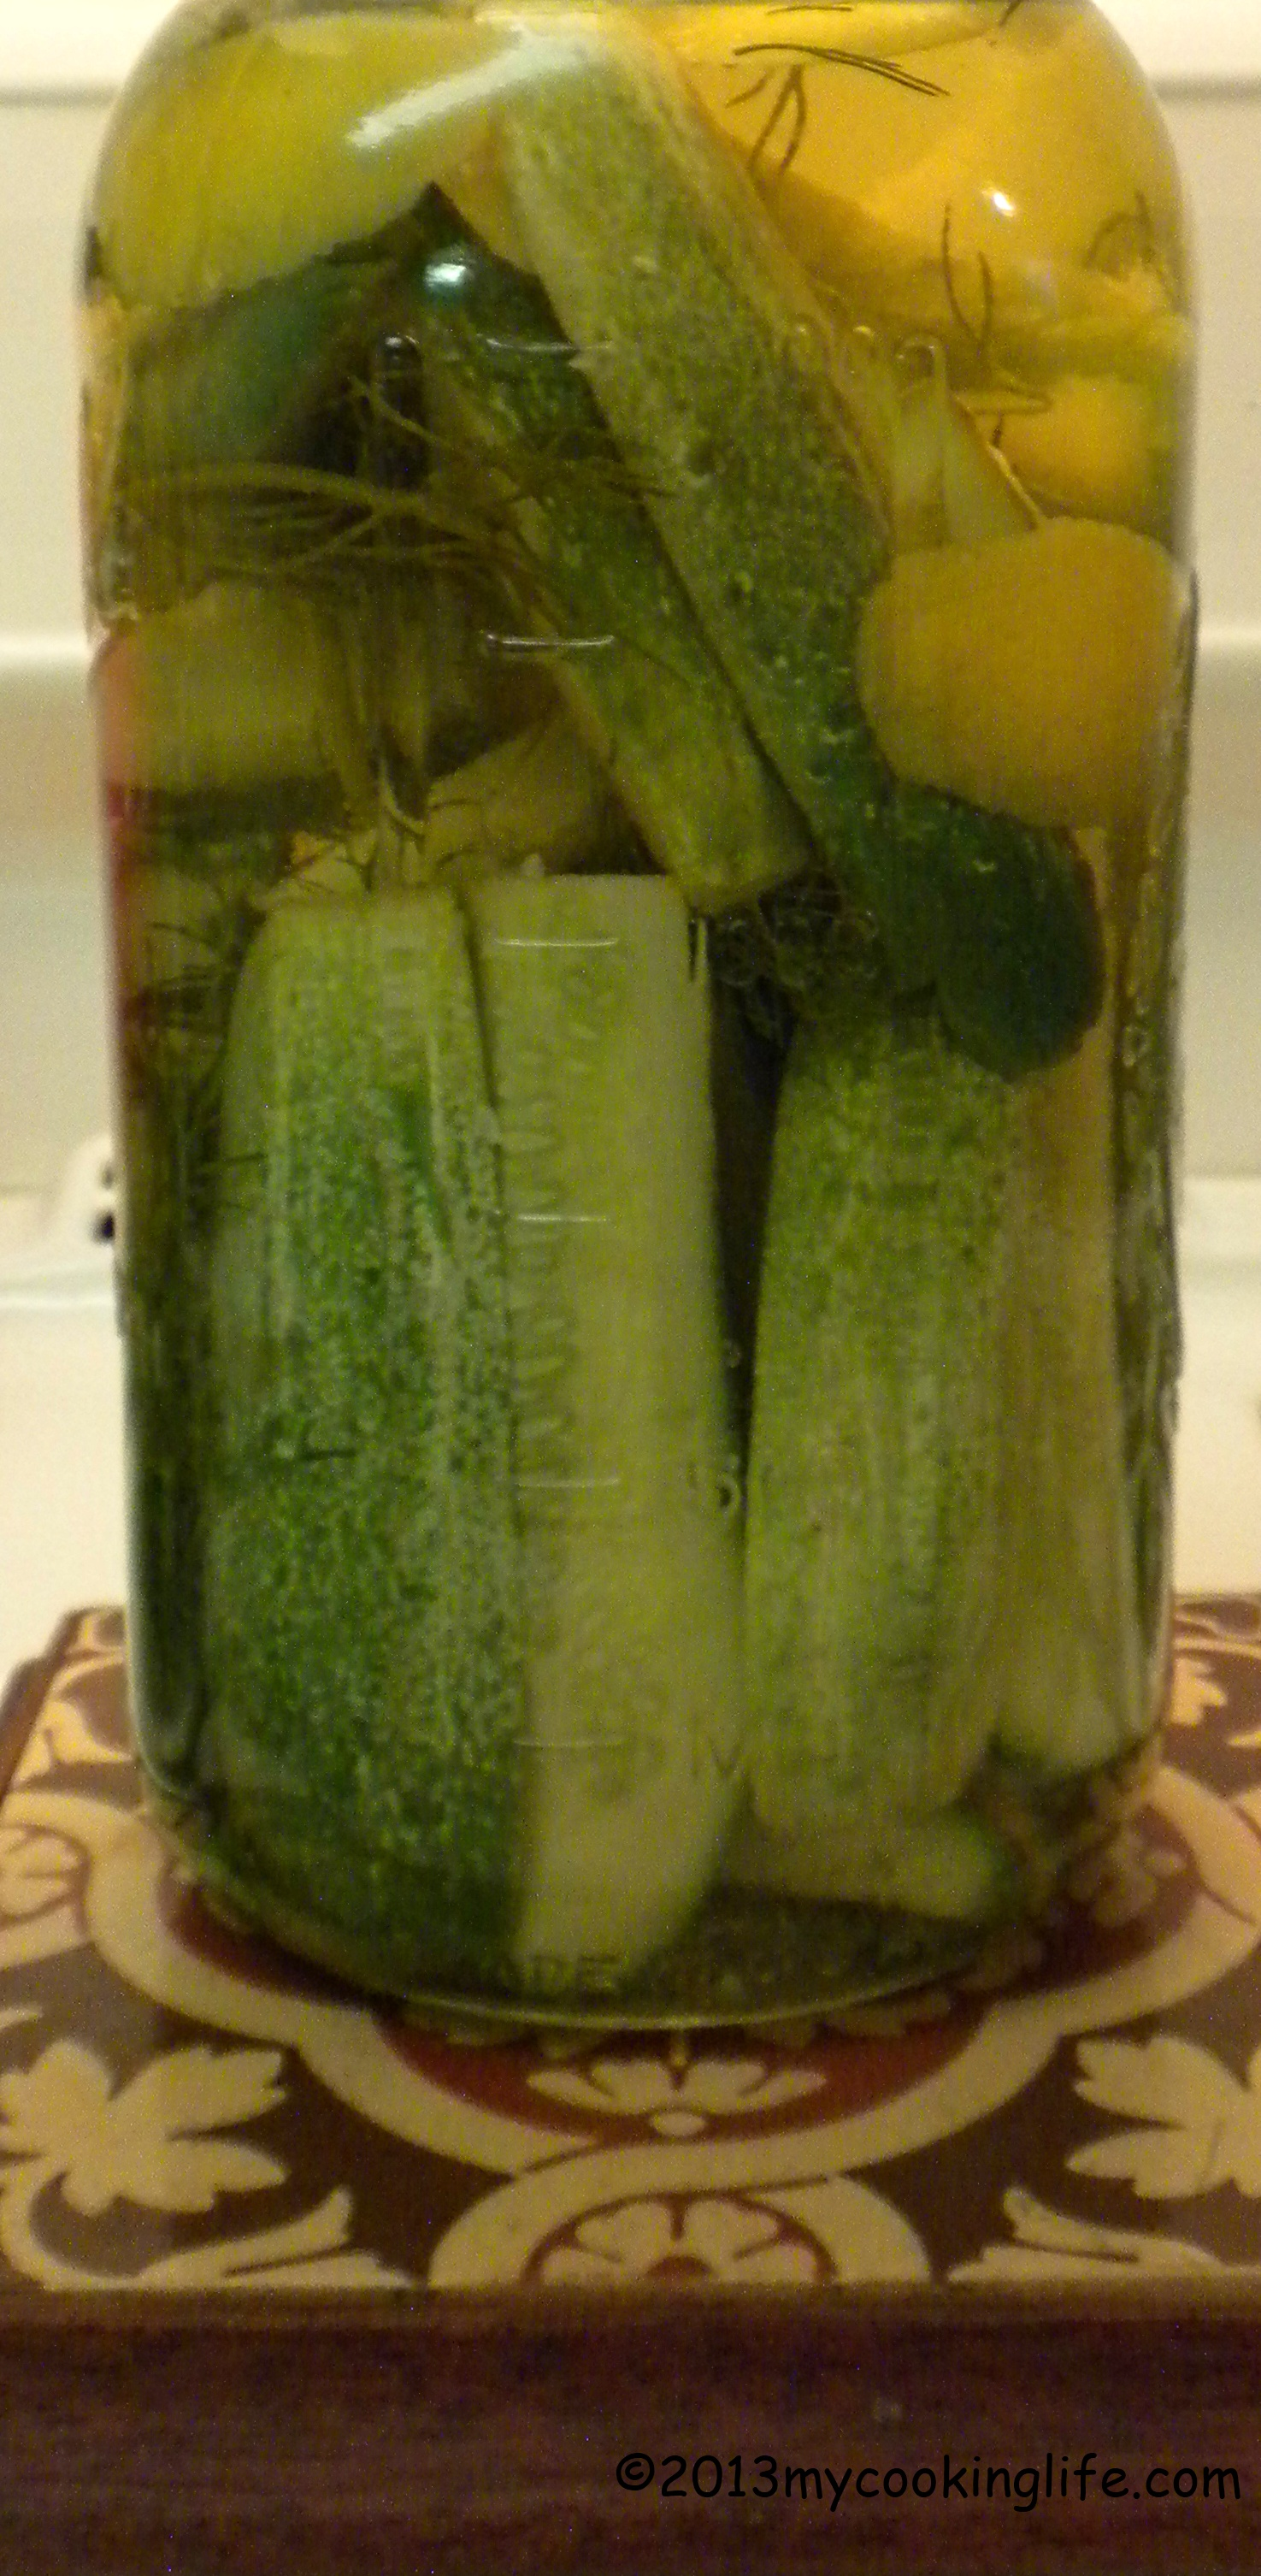 These babies are in a pickle!